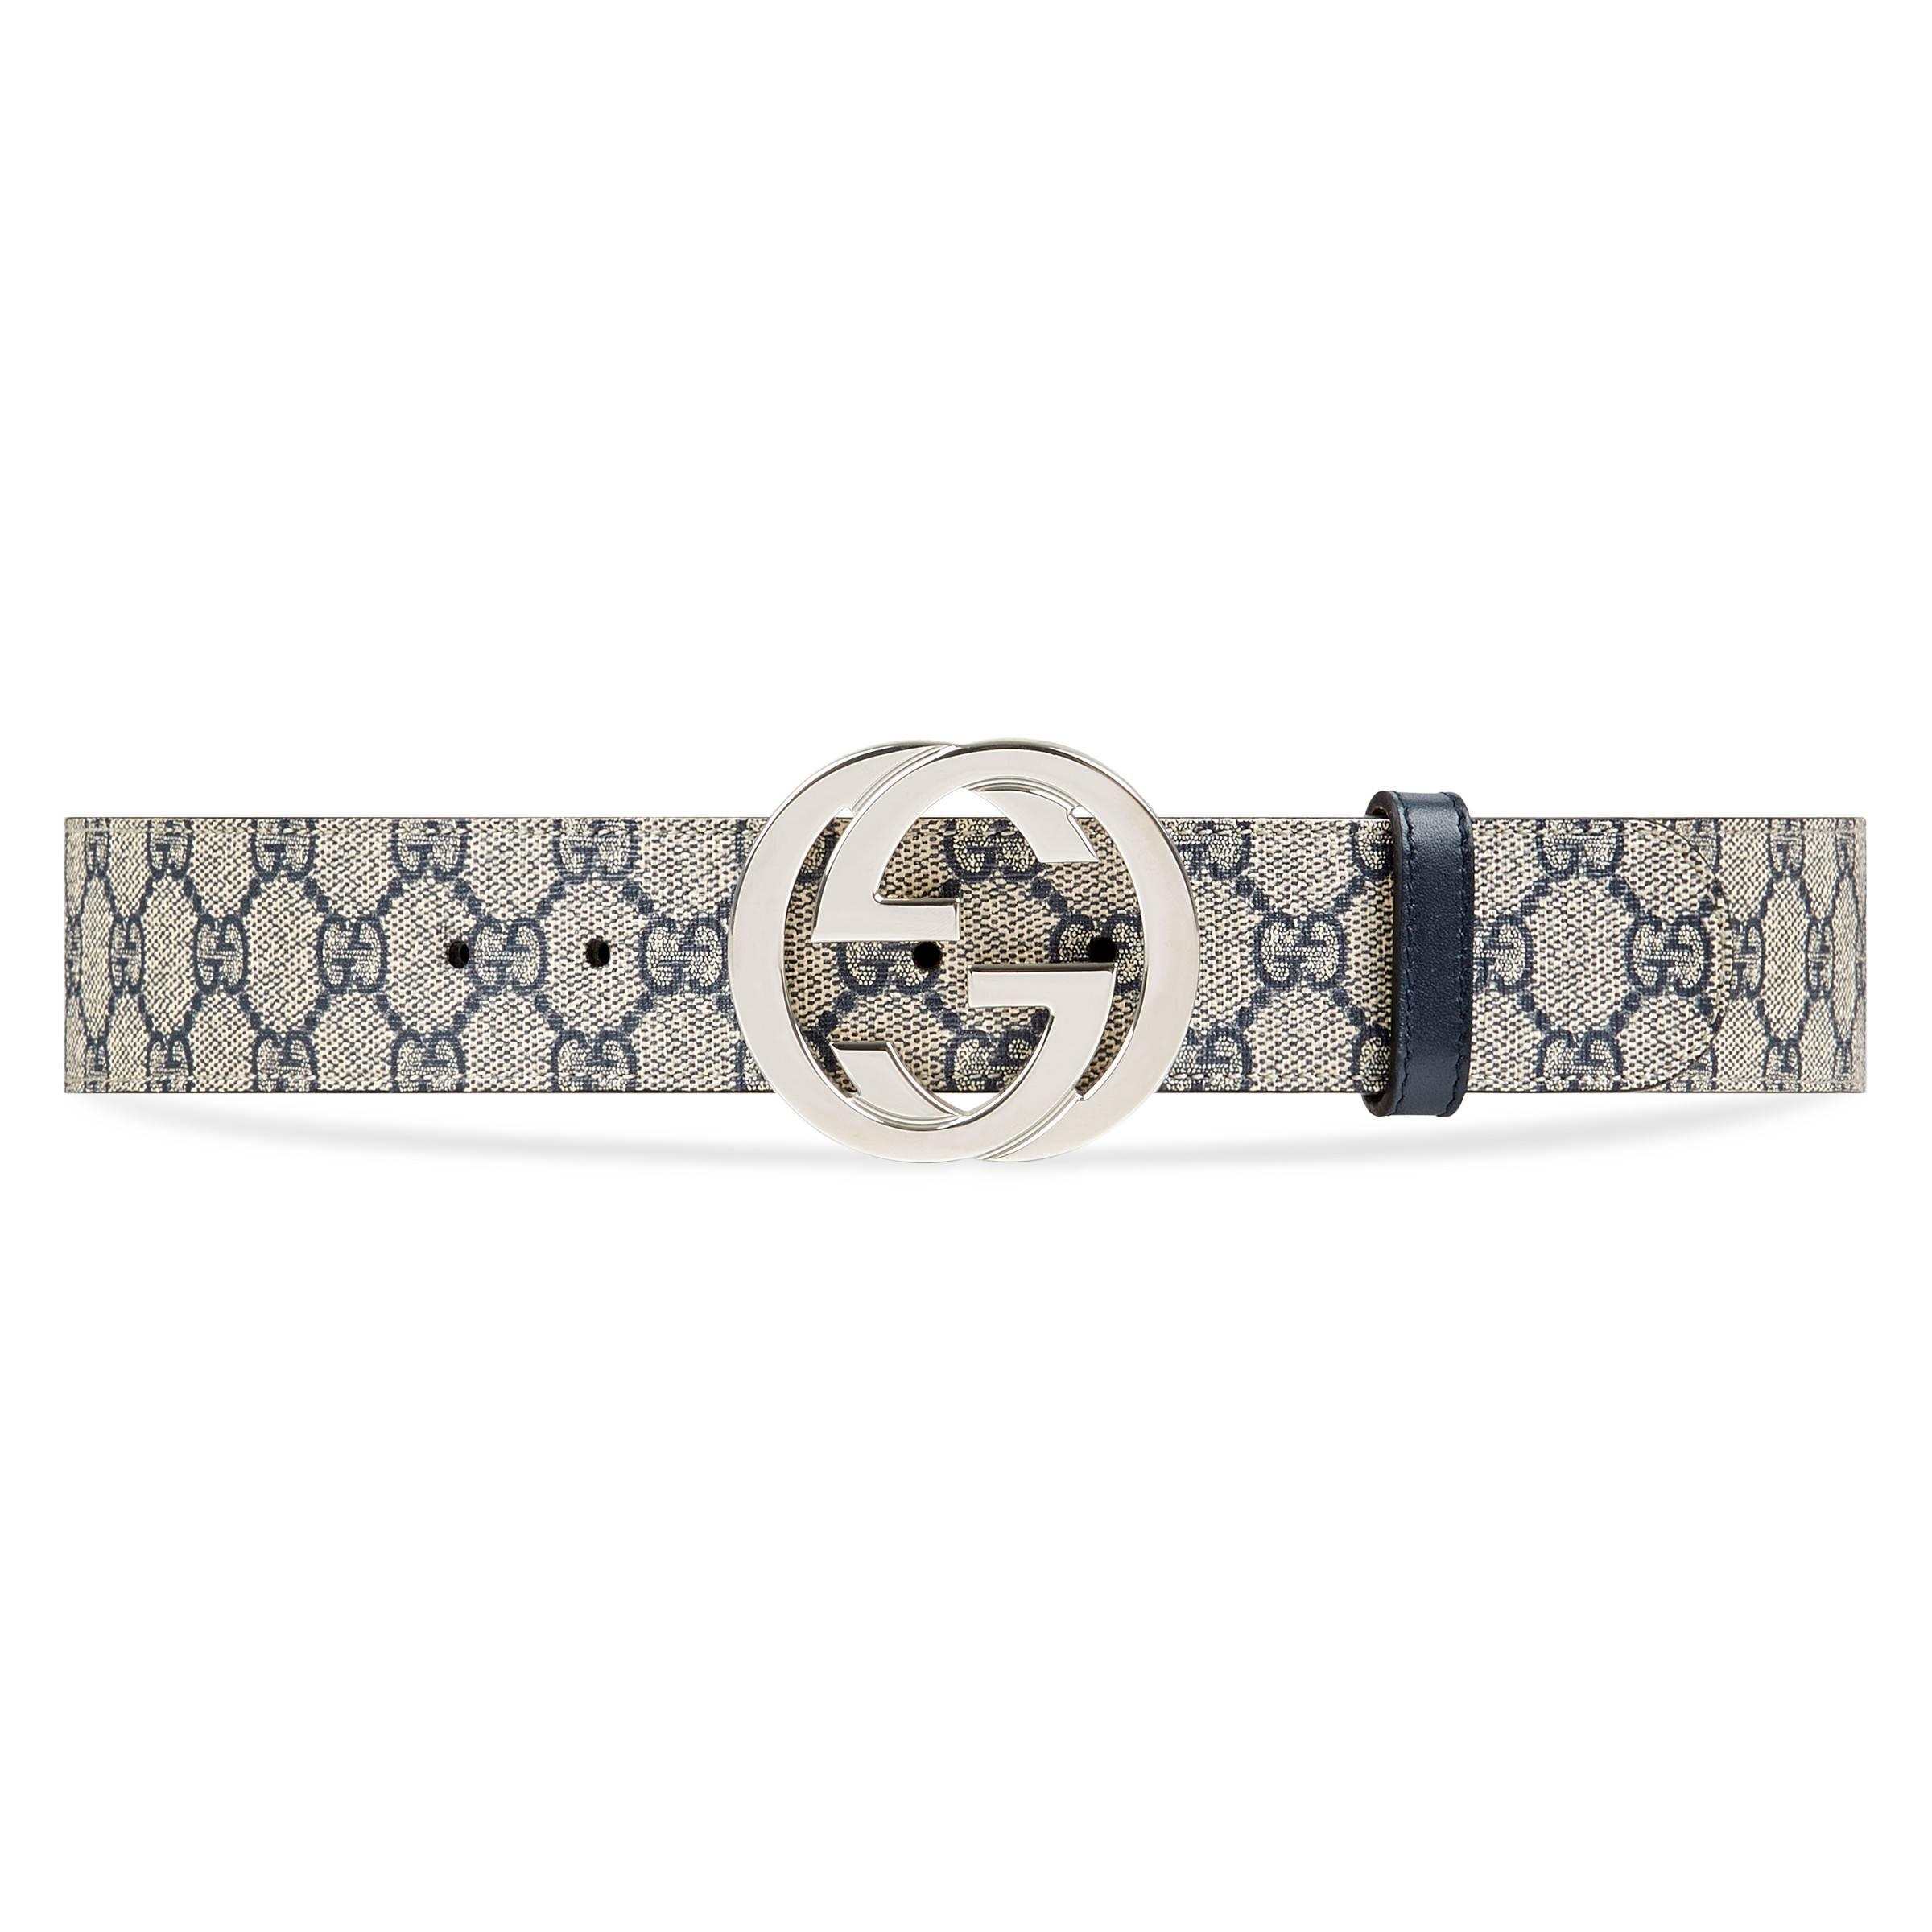 9ef58267d Gucci GG Supreme Belt With G Buckle in Blue for Men - Save 8% - Lyst